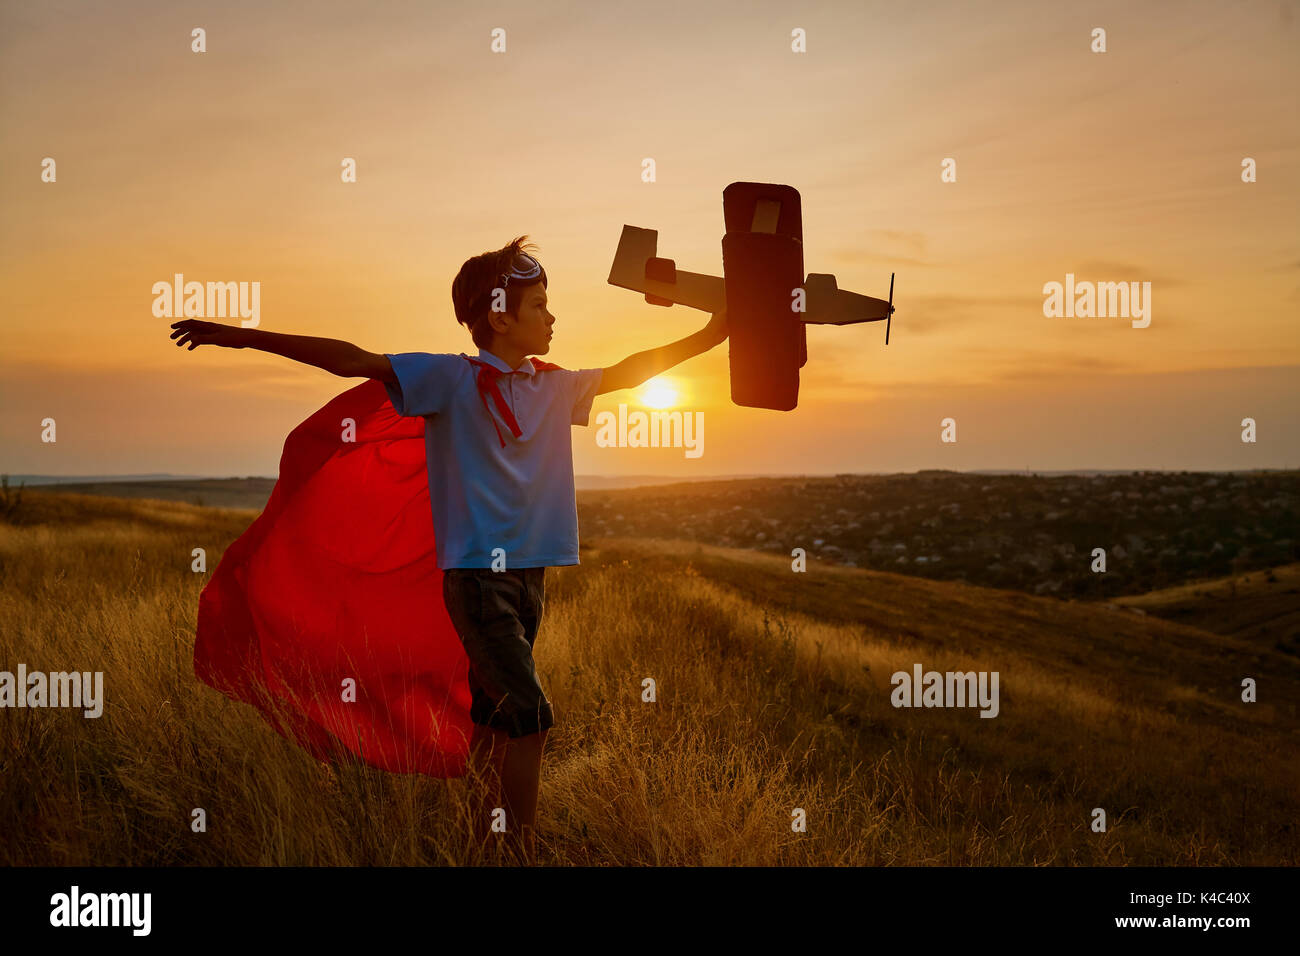 A happy boy in a superhero costume is playing with an airplane. - Stock Image